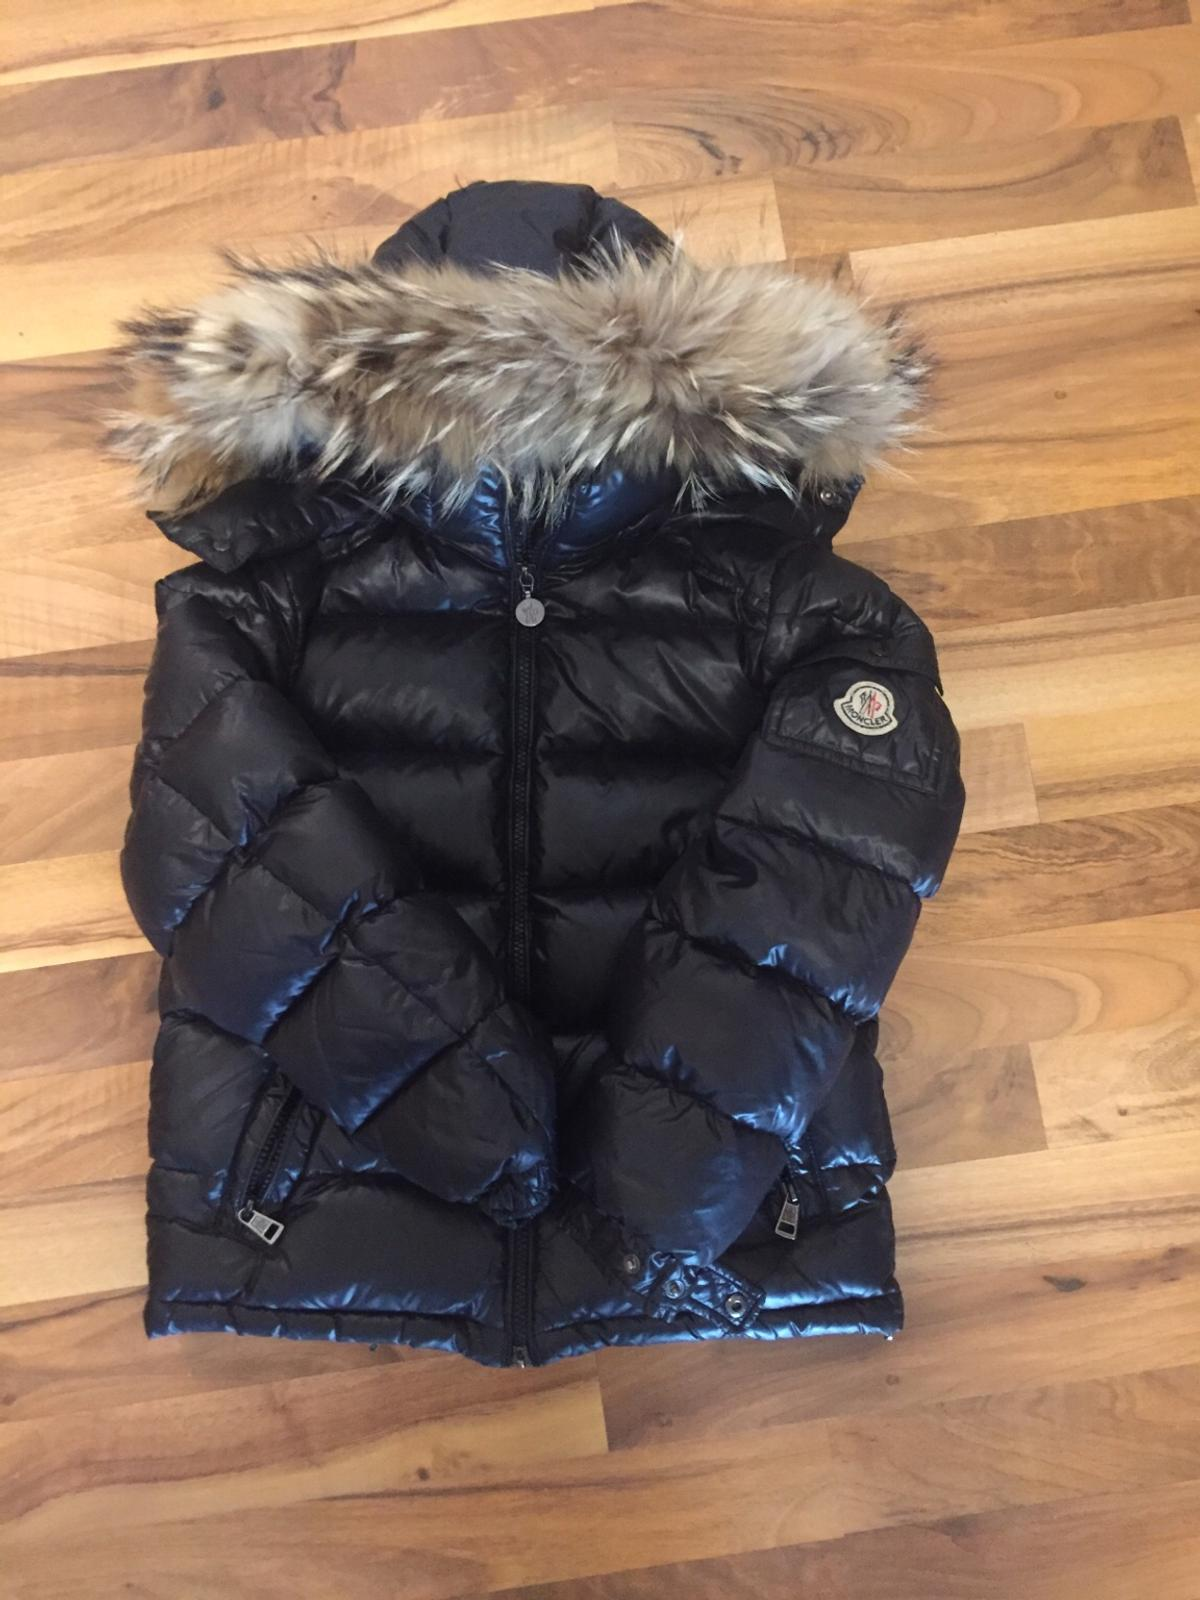 reputable site d87ff 919ae Moncler Kinderjacke